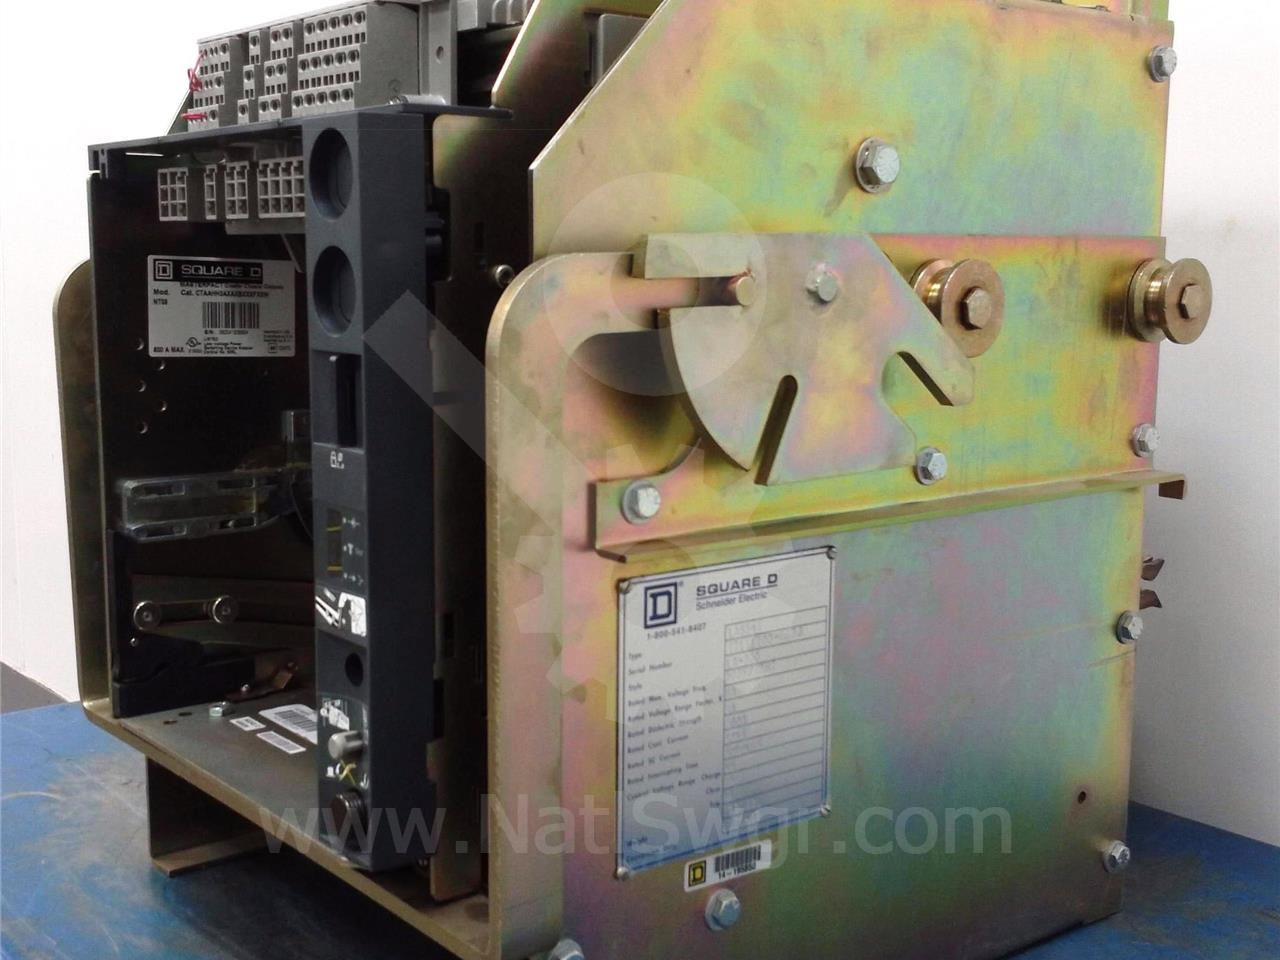 Square D 800A SQD MASTERPACT LA-600A/LA-800A RETROFILL ASSEMBLY UNUSED SURPLUS